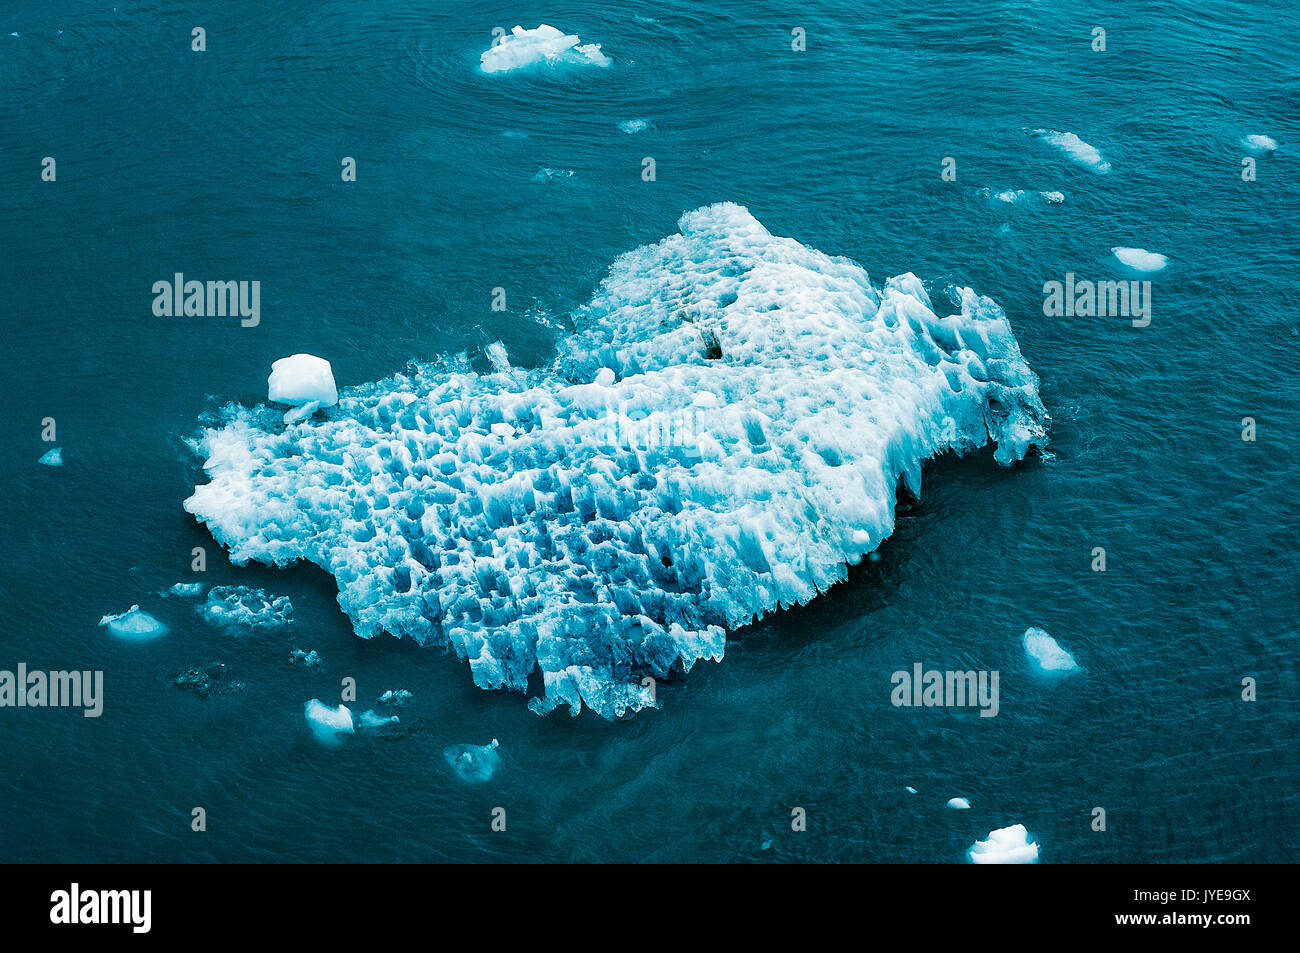 Iceberg floating in ocean, Alaska, USA. - Stock Image